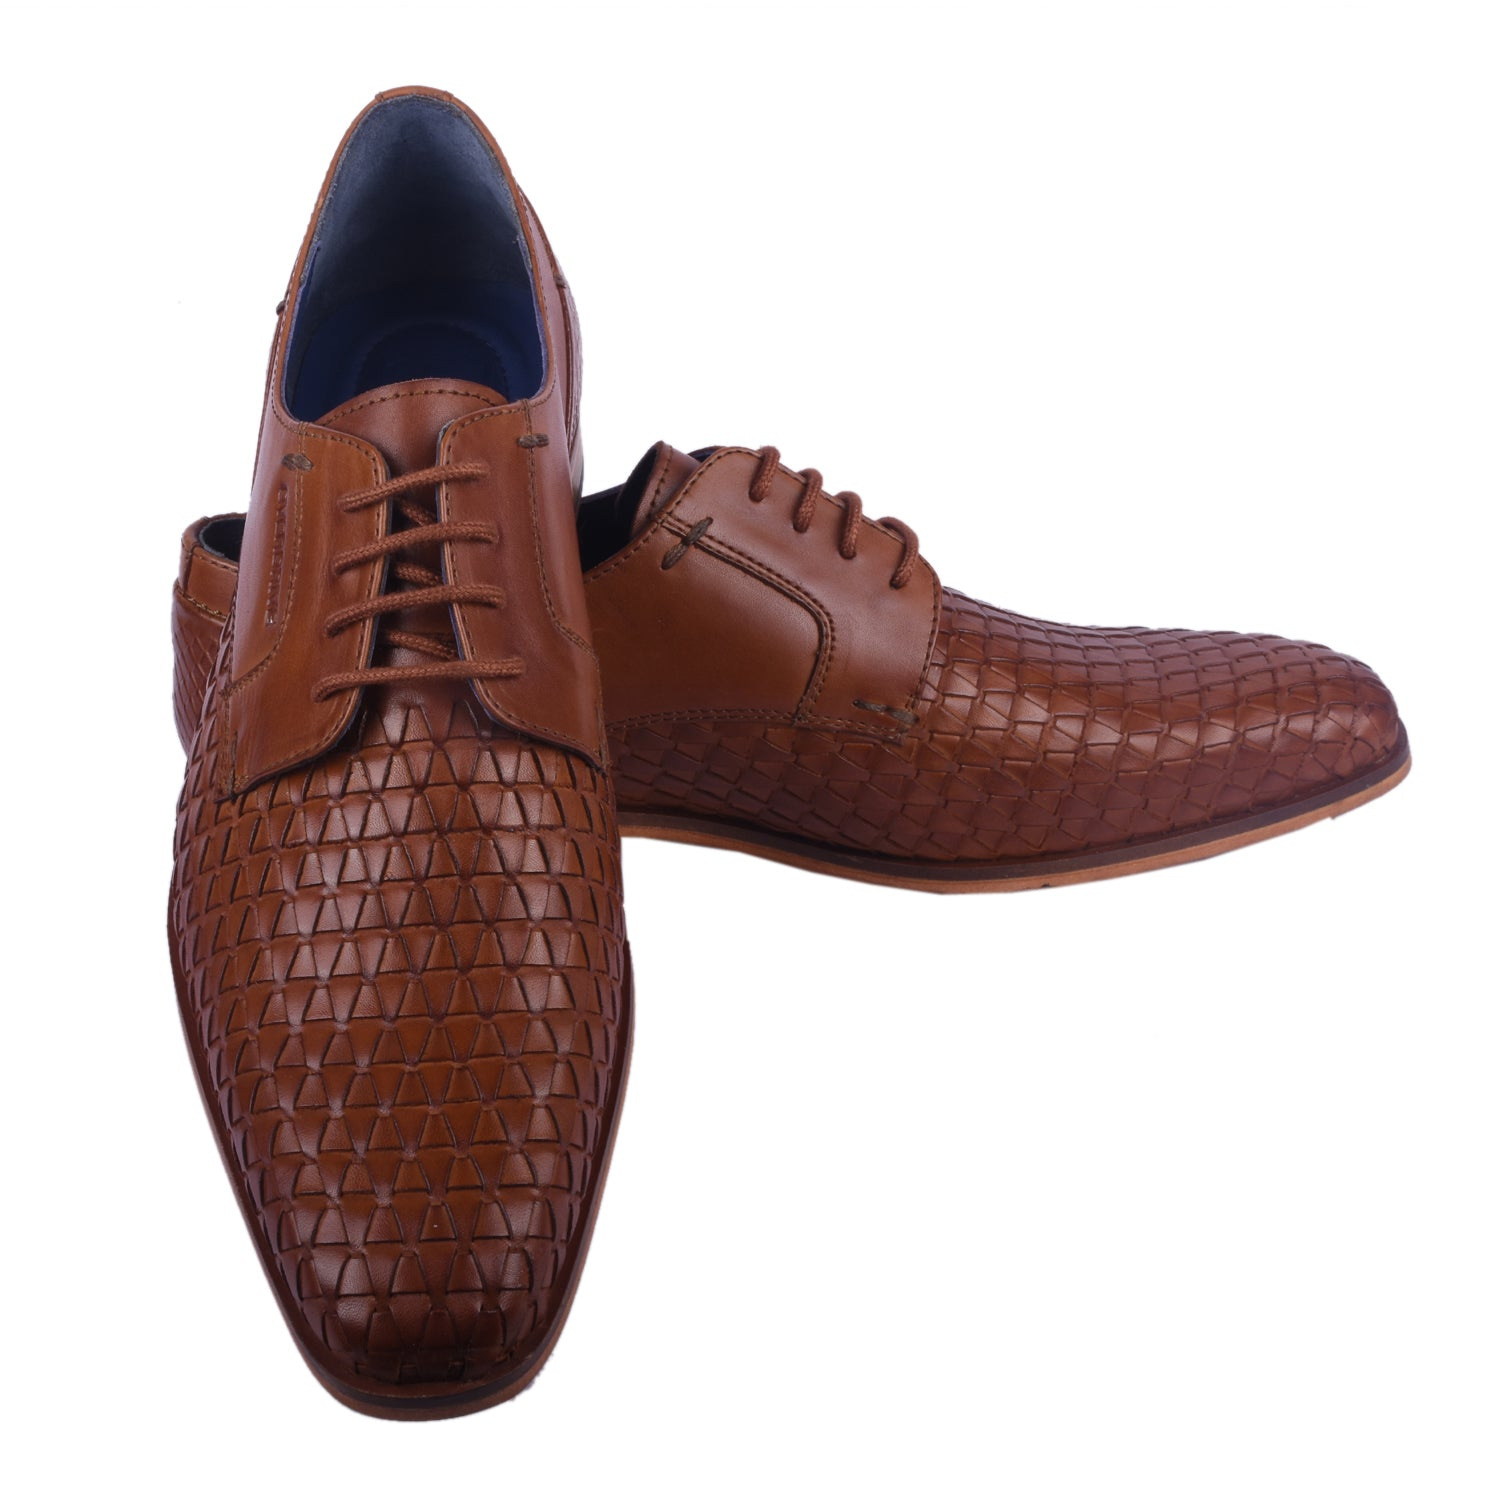 Tuscan Tan Lace up Shoe